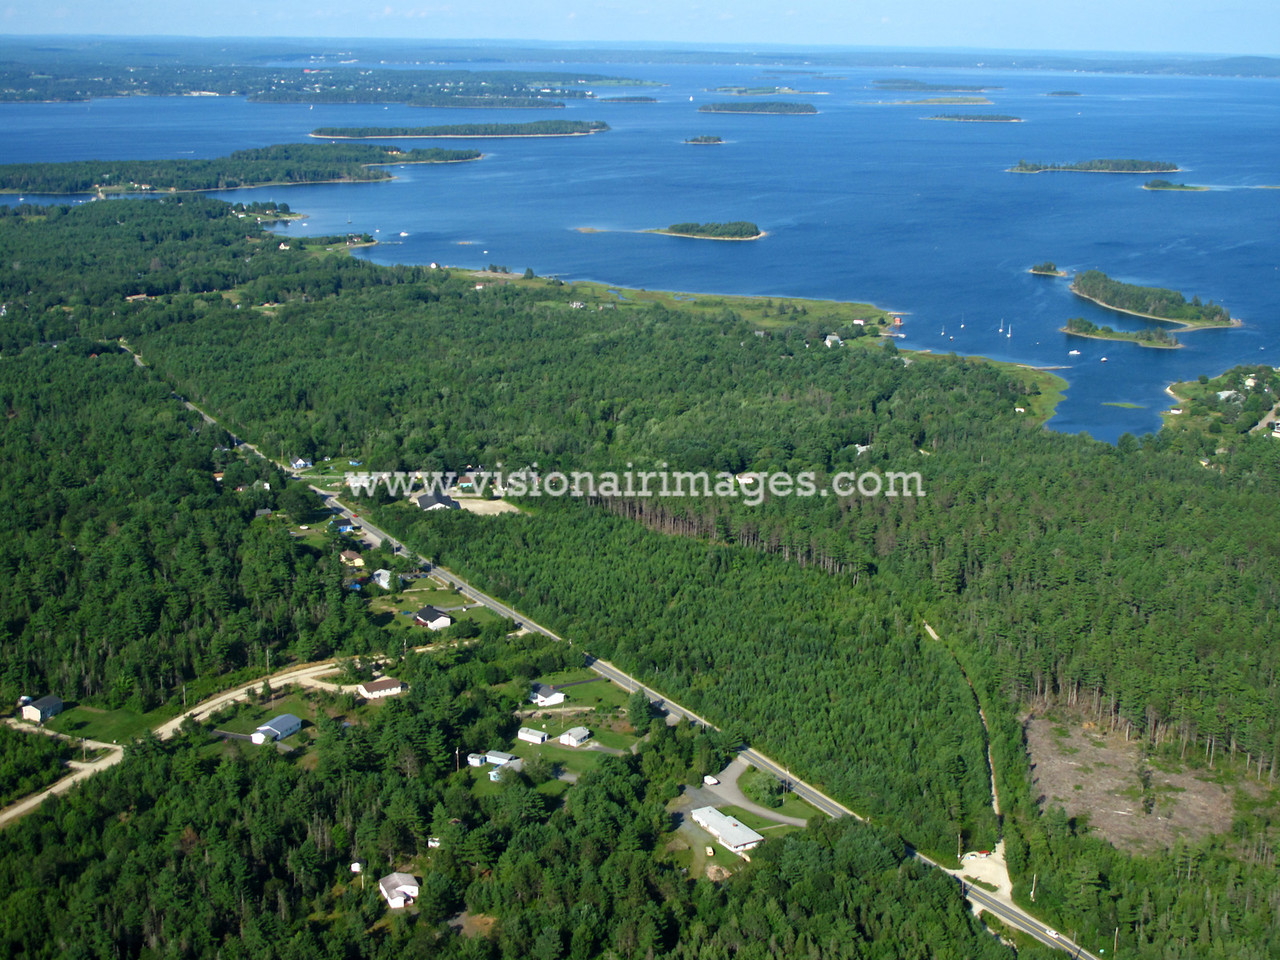 Western Shore, Mahone Bay, Oak Island, Nova Scotia Canada